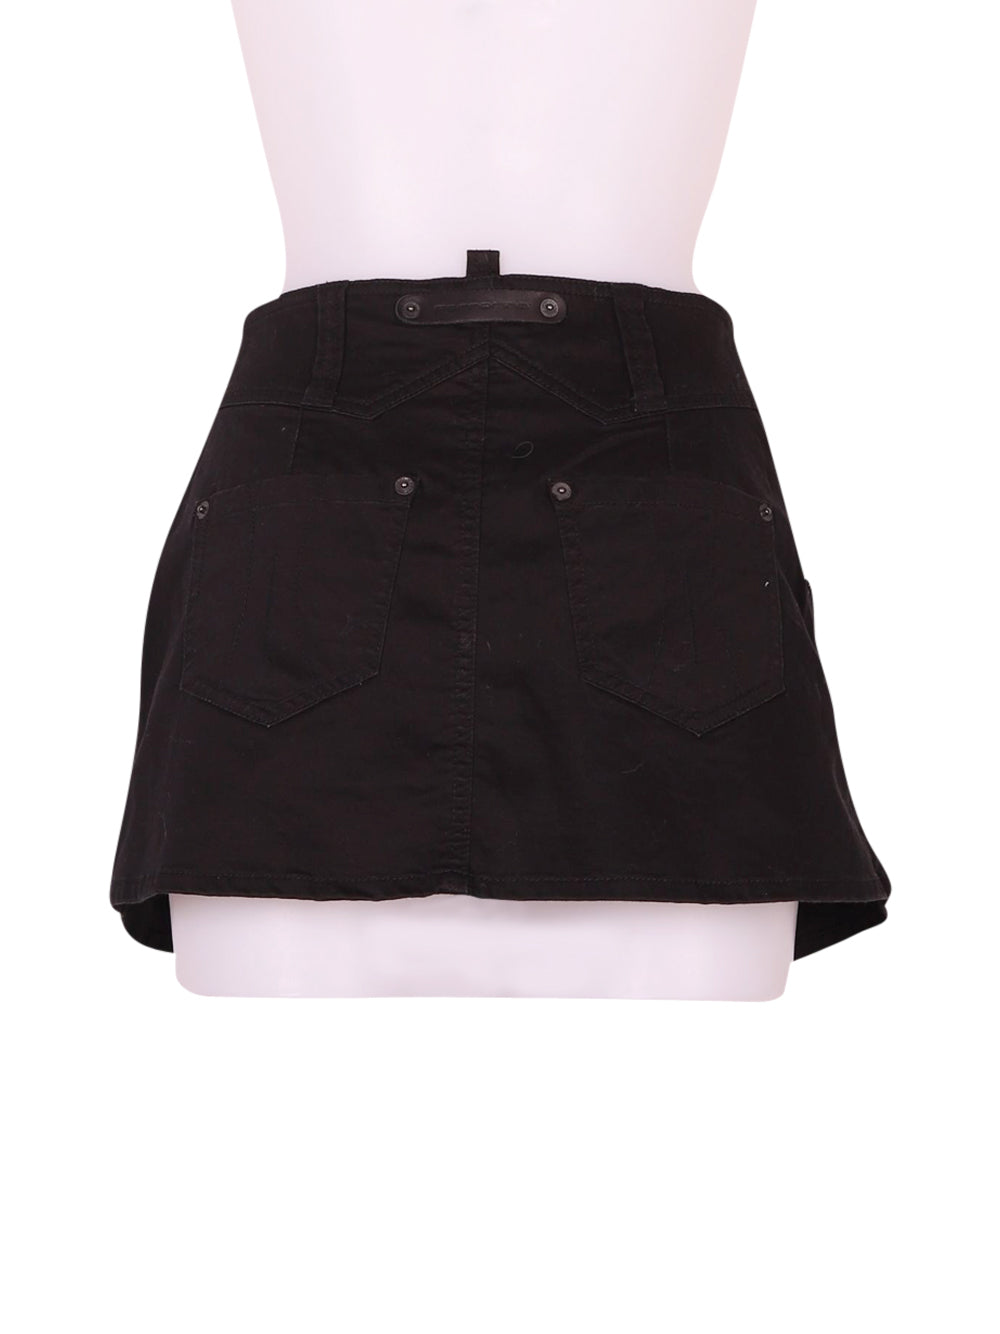 Back photo of Preloved Fornarina Black Woman's skirt - size 6/XS